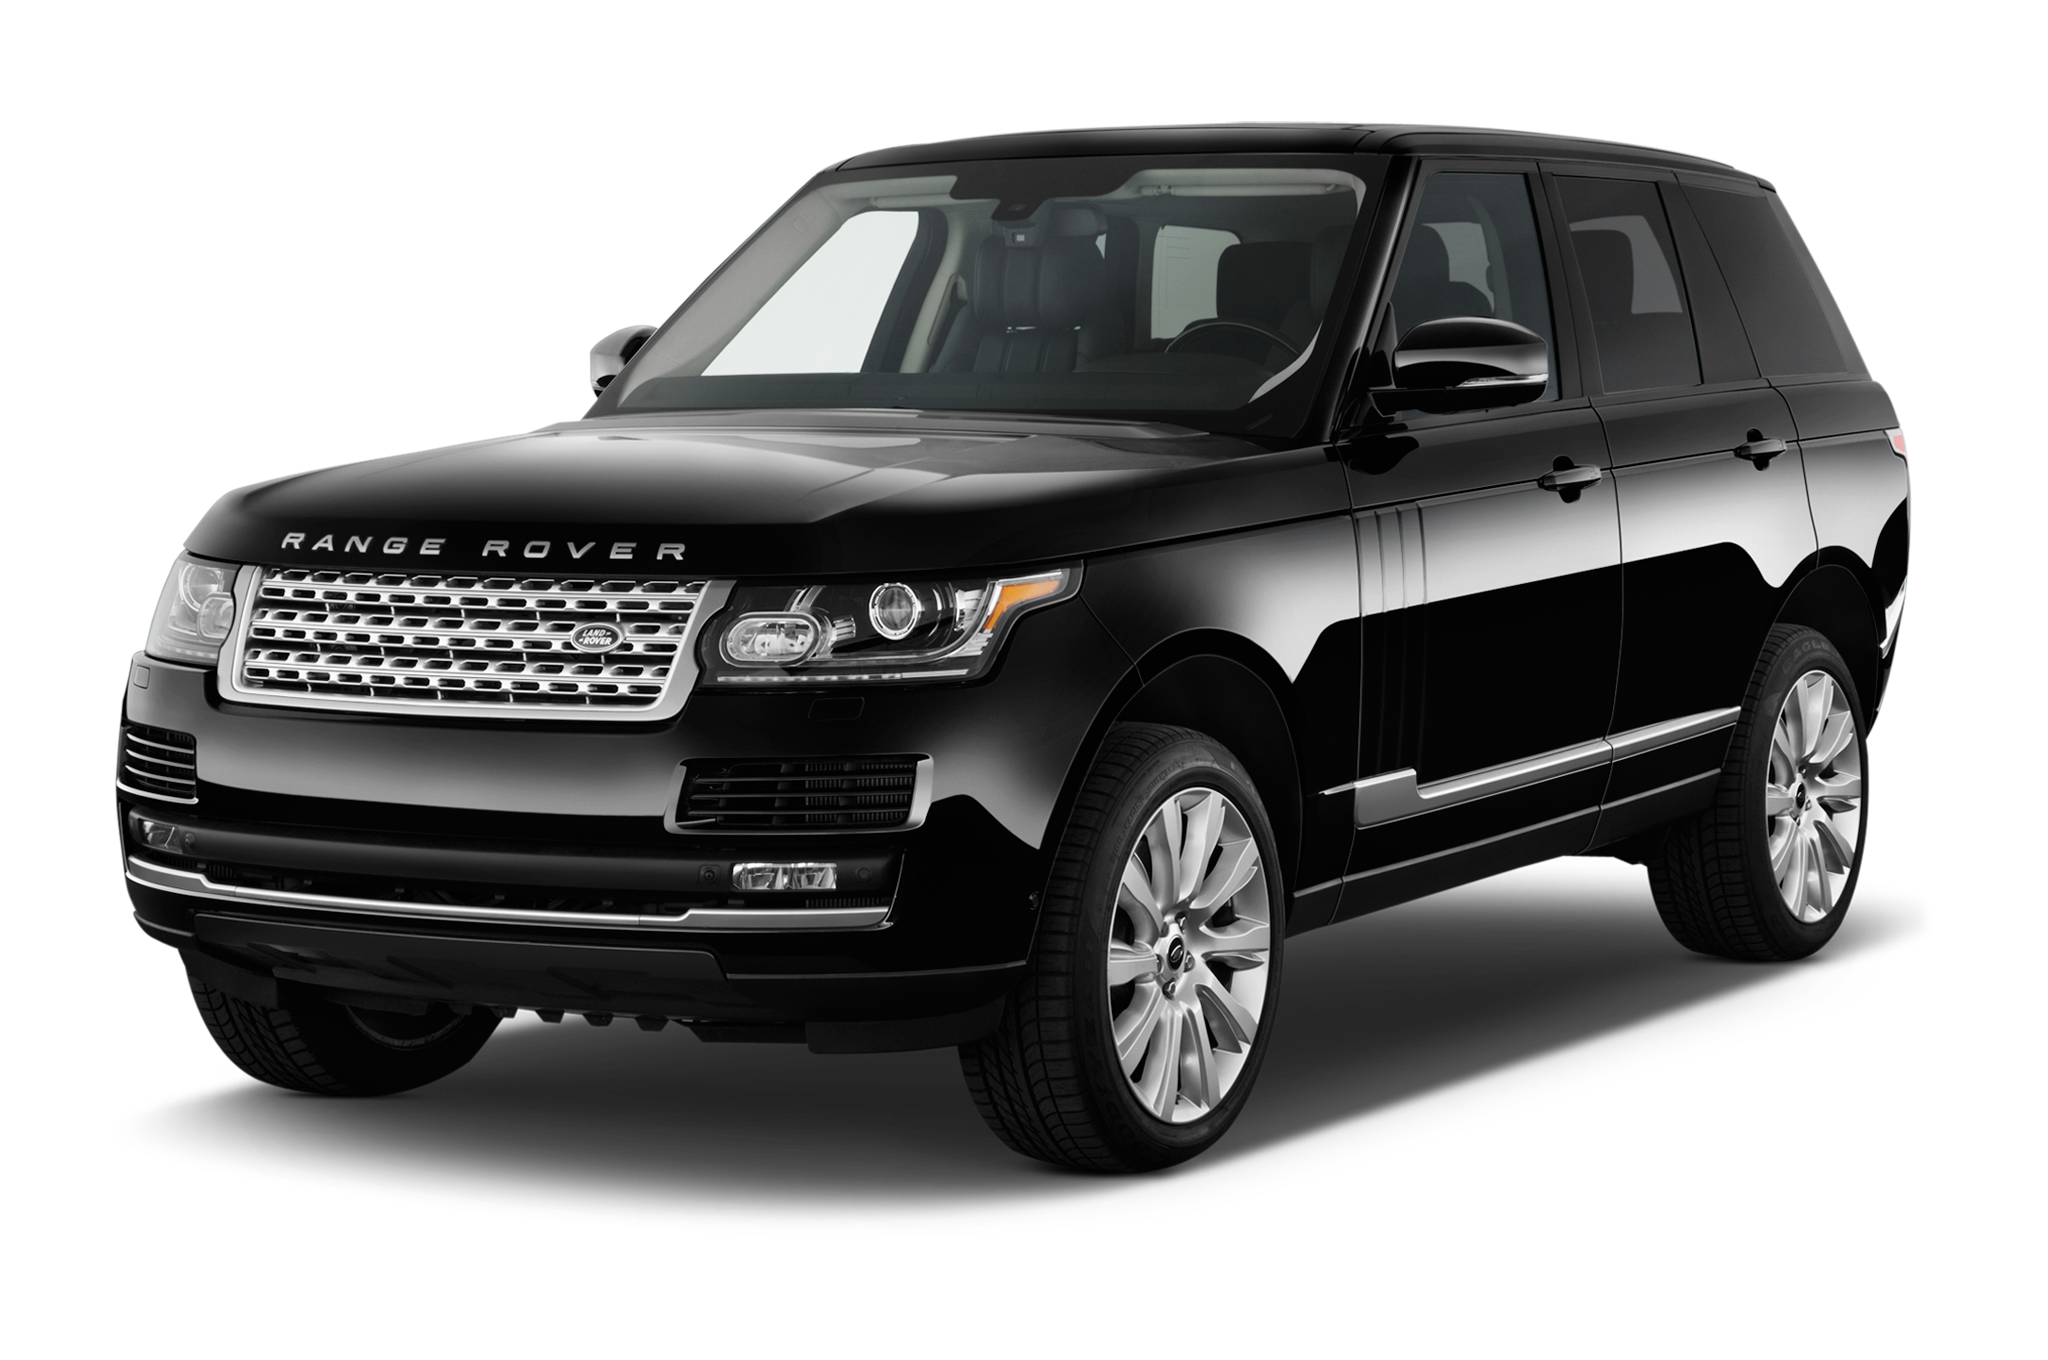 Pin By Hopeless On Men Toys And Gadgets Range Rover Supercharged Land Rover Sport Land Rover